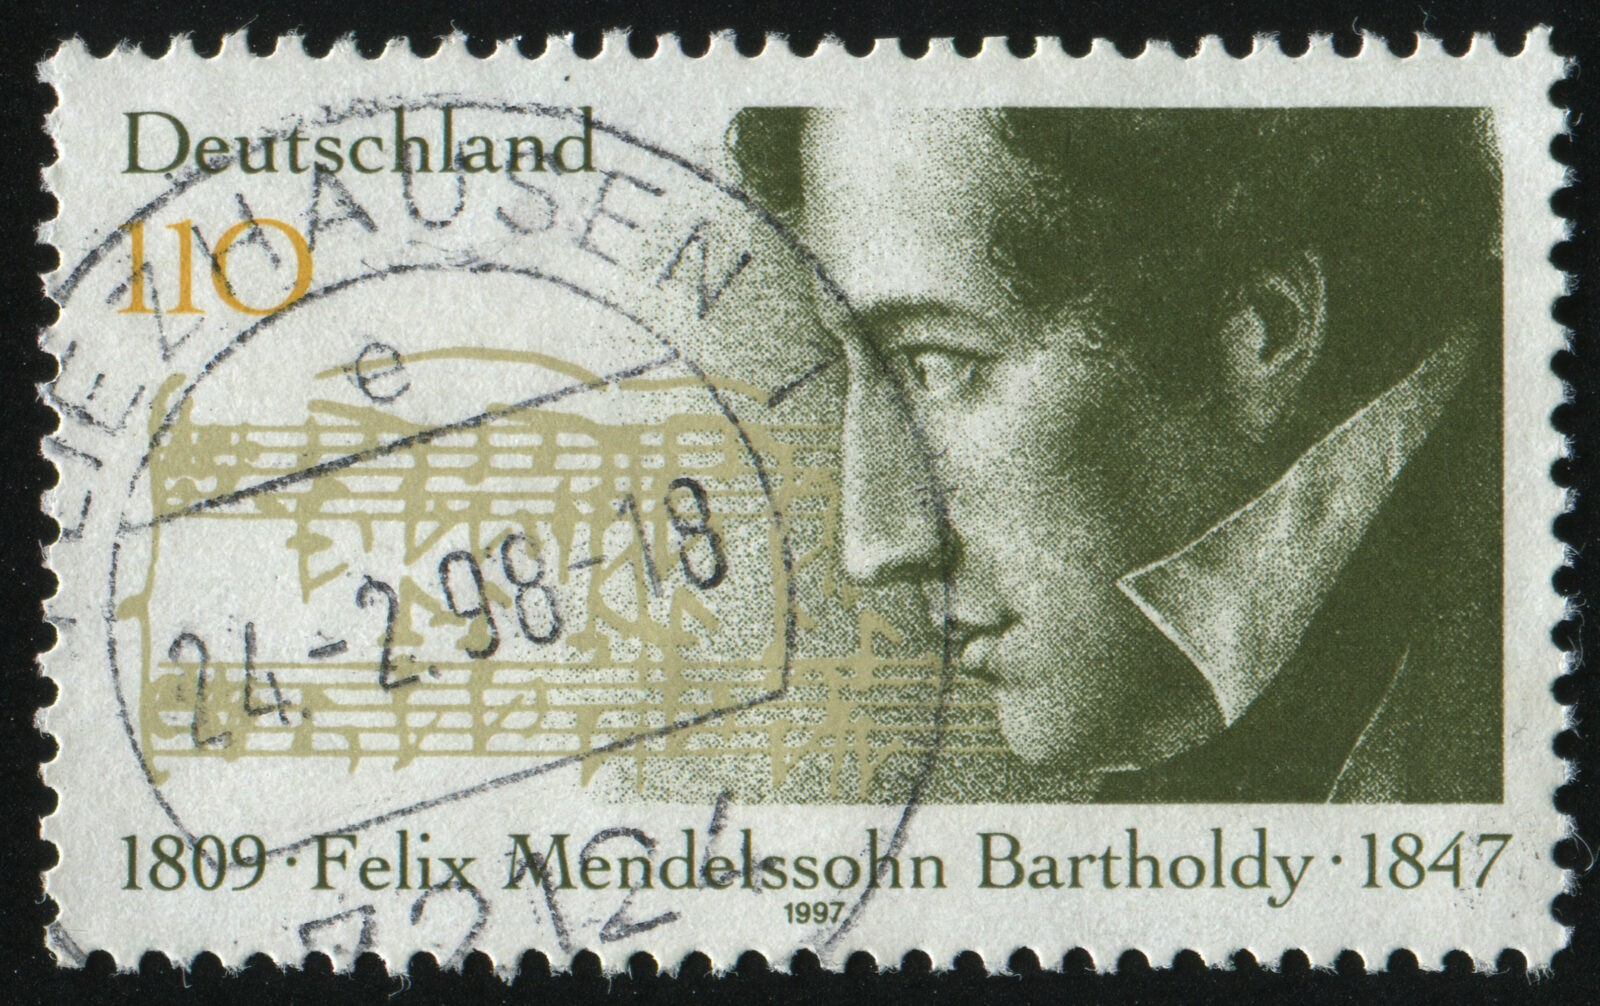 GERMANY- CIRCA 1997: stamp printed by Germany, shows Felix Mendelssohn-Bartholdy, Composer, circa 1997.